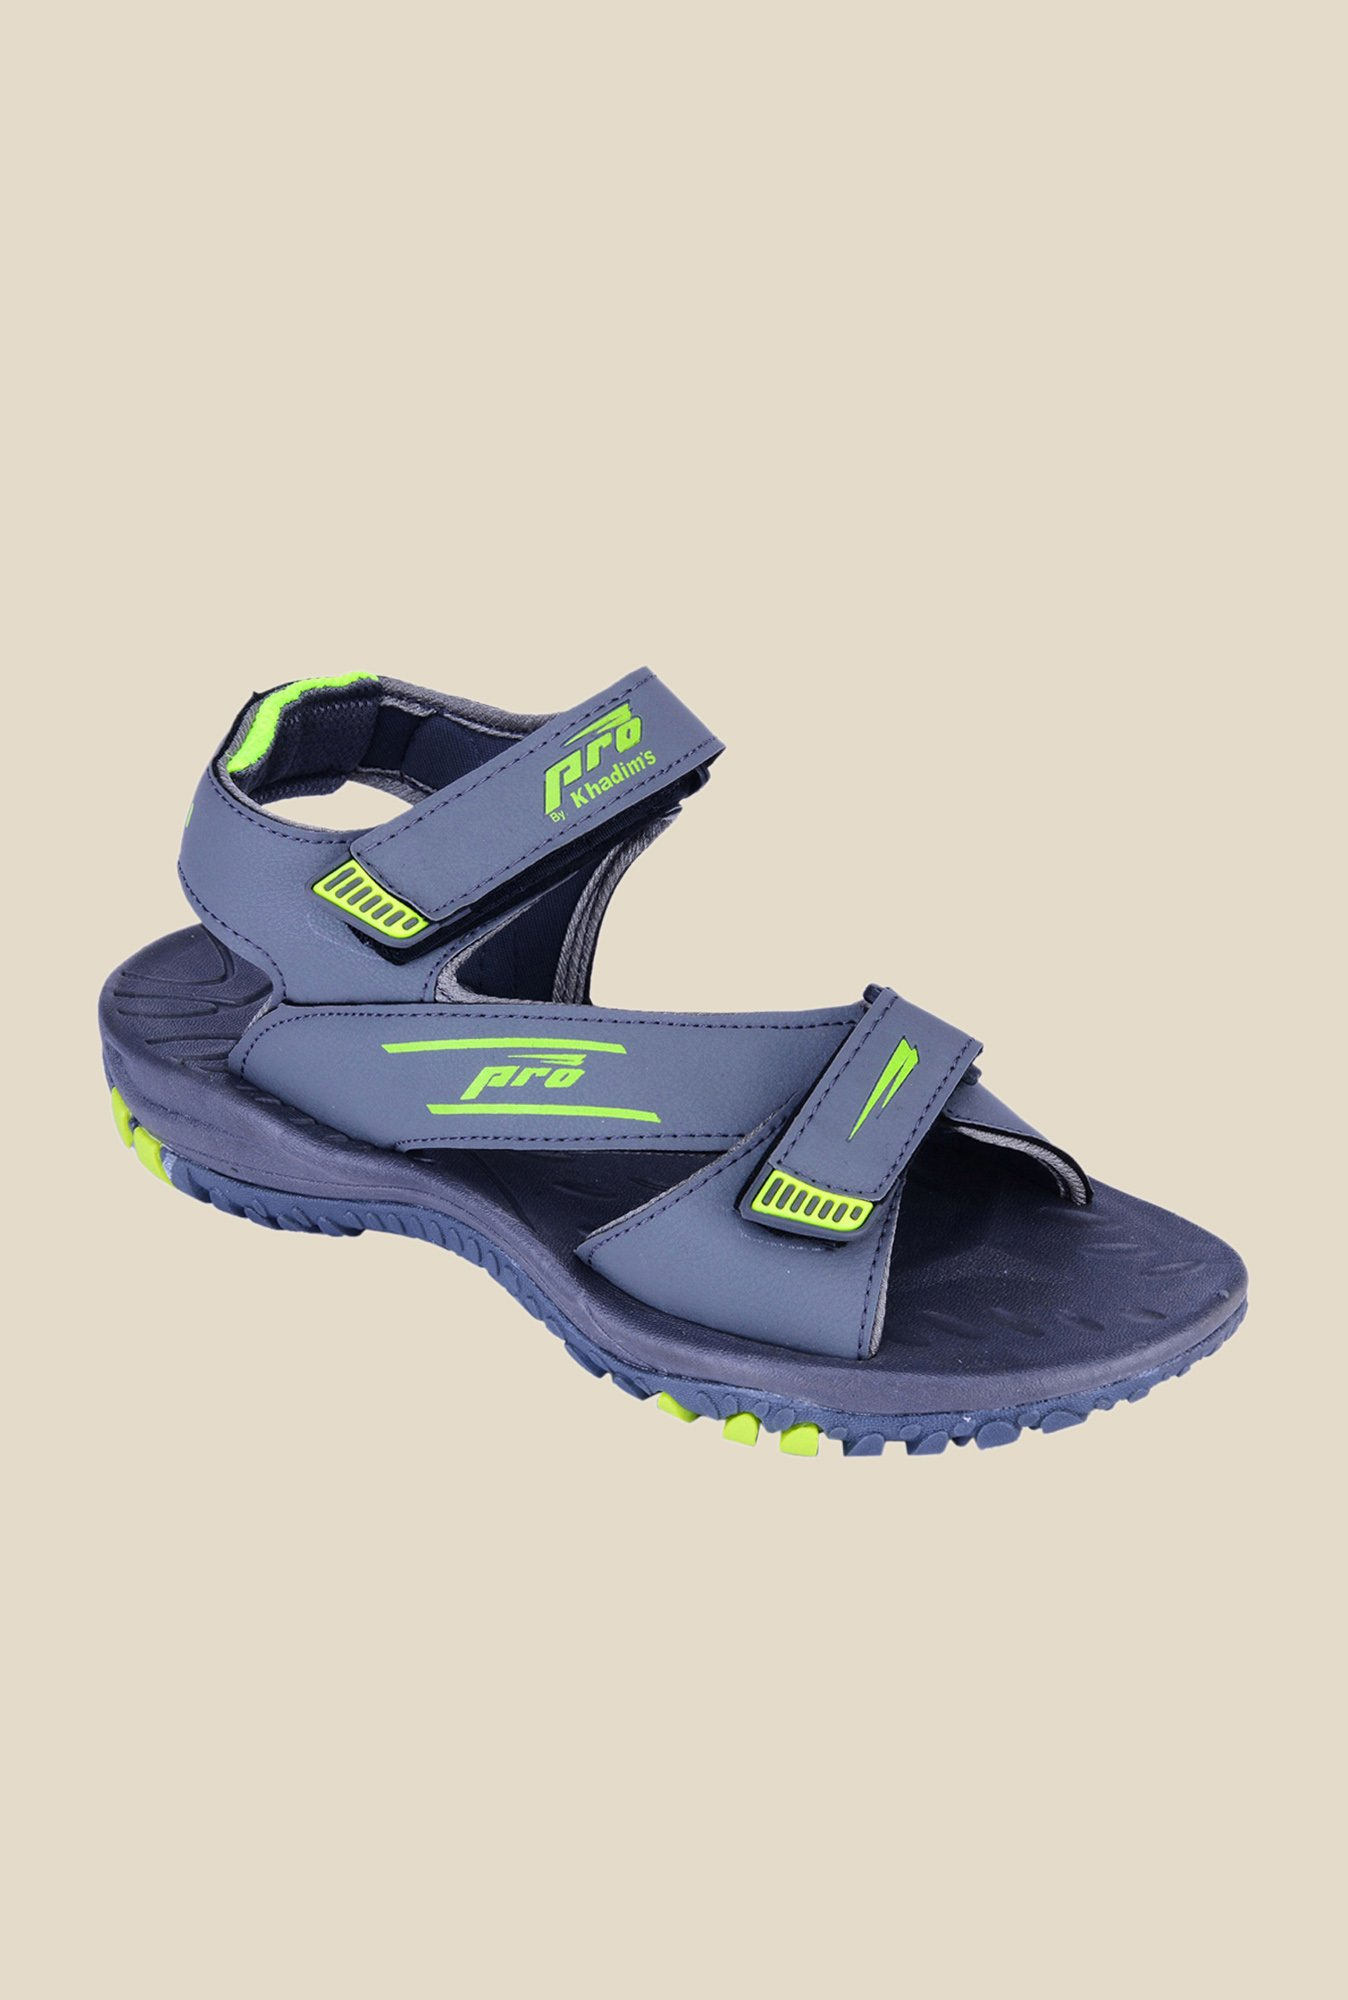 Khadim's Pro Blue Floater Sandals